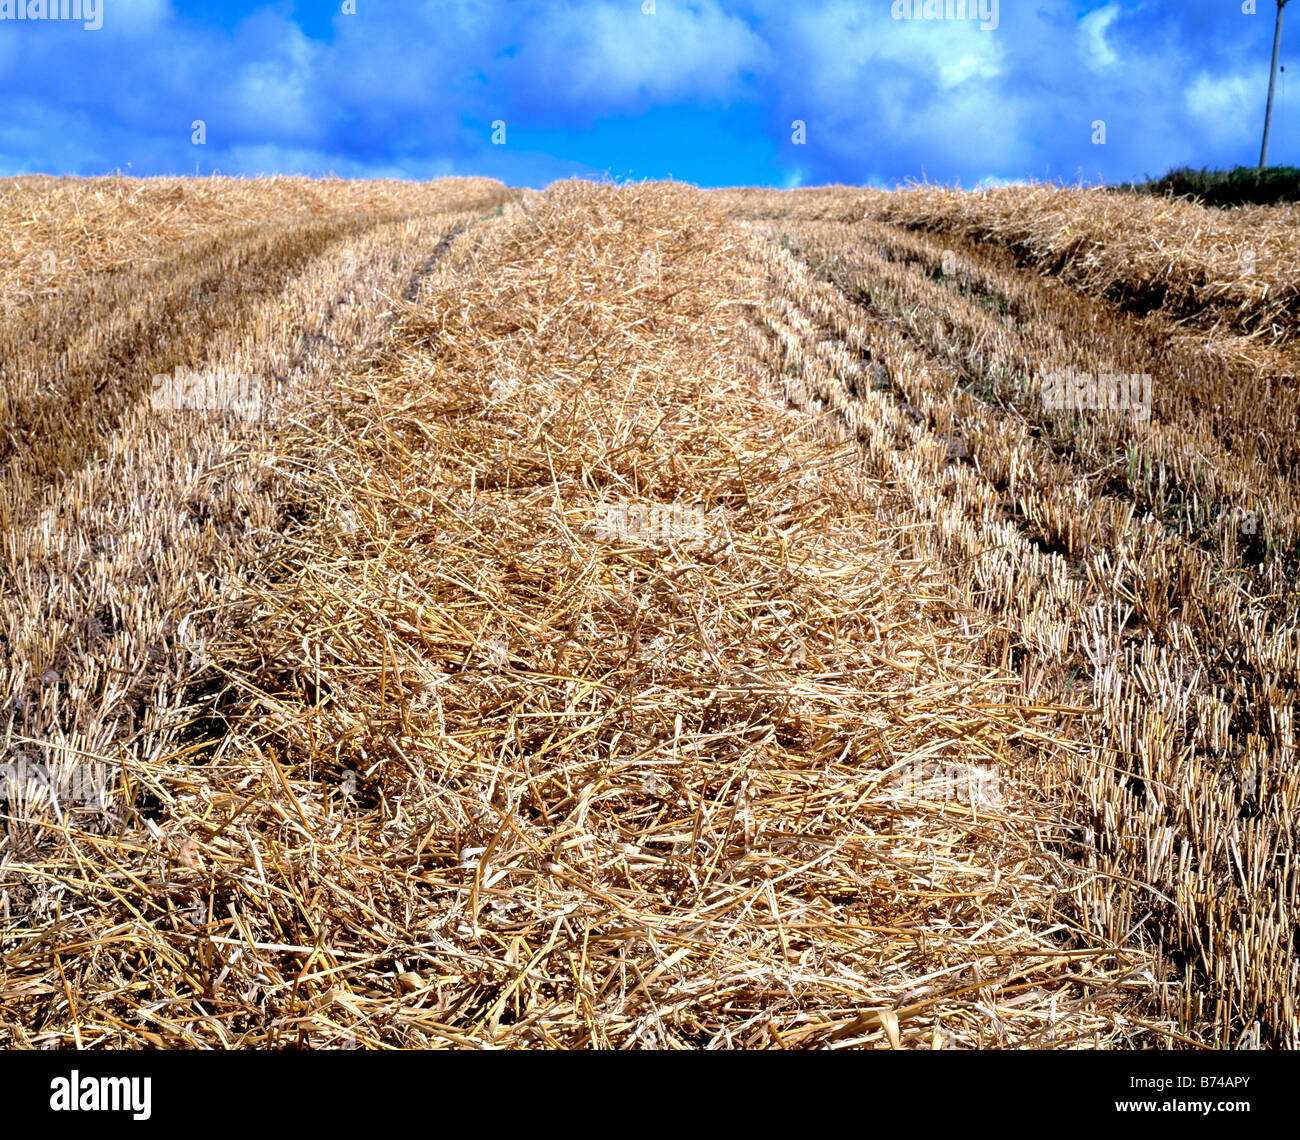 field of stubbled corn after harvest, - Stock Image